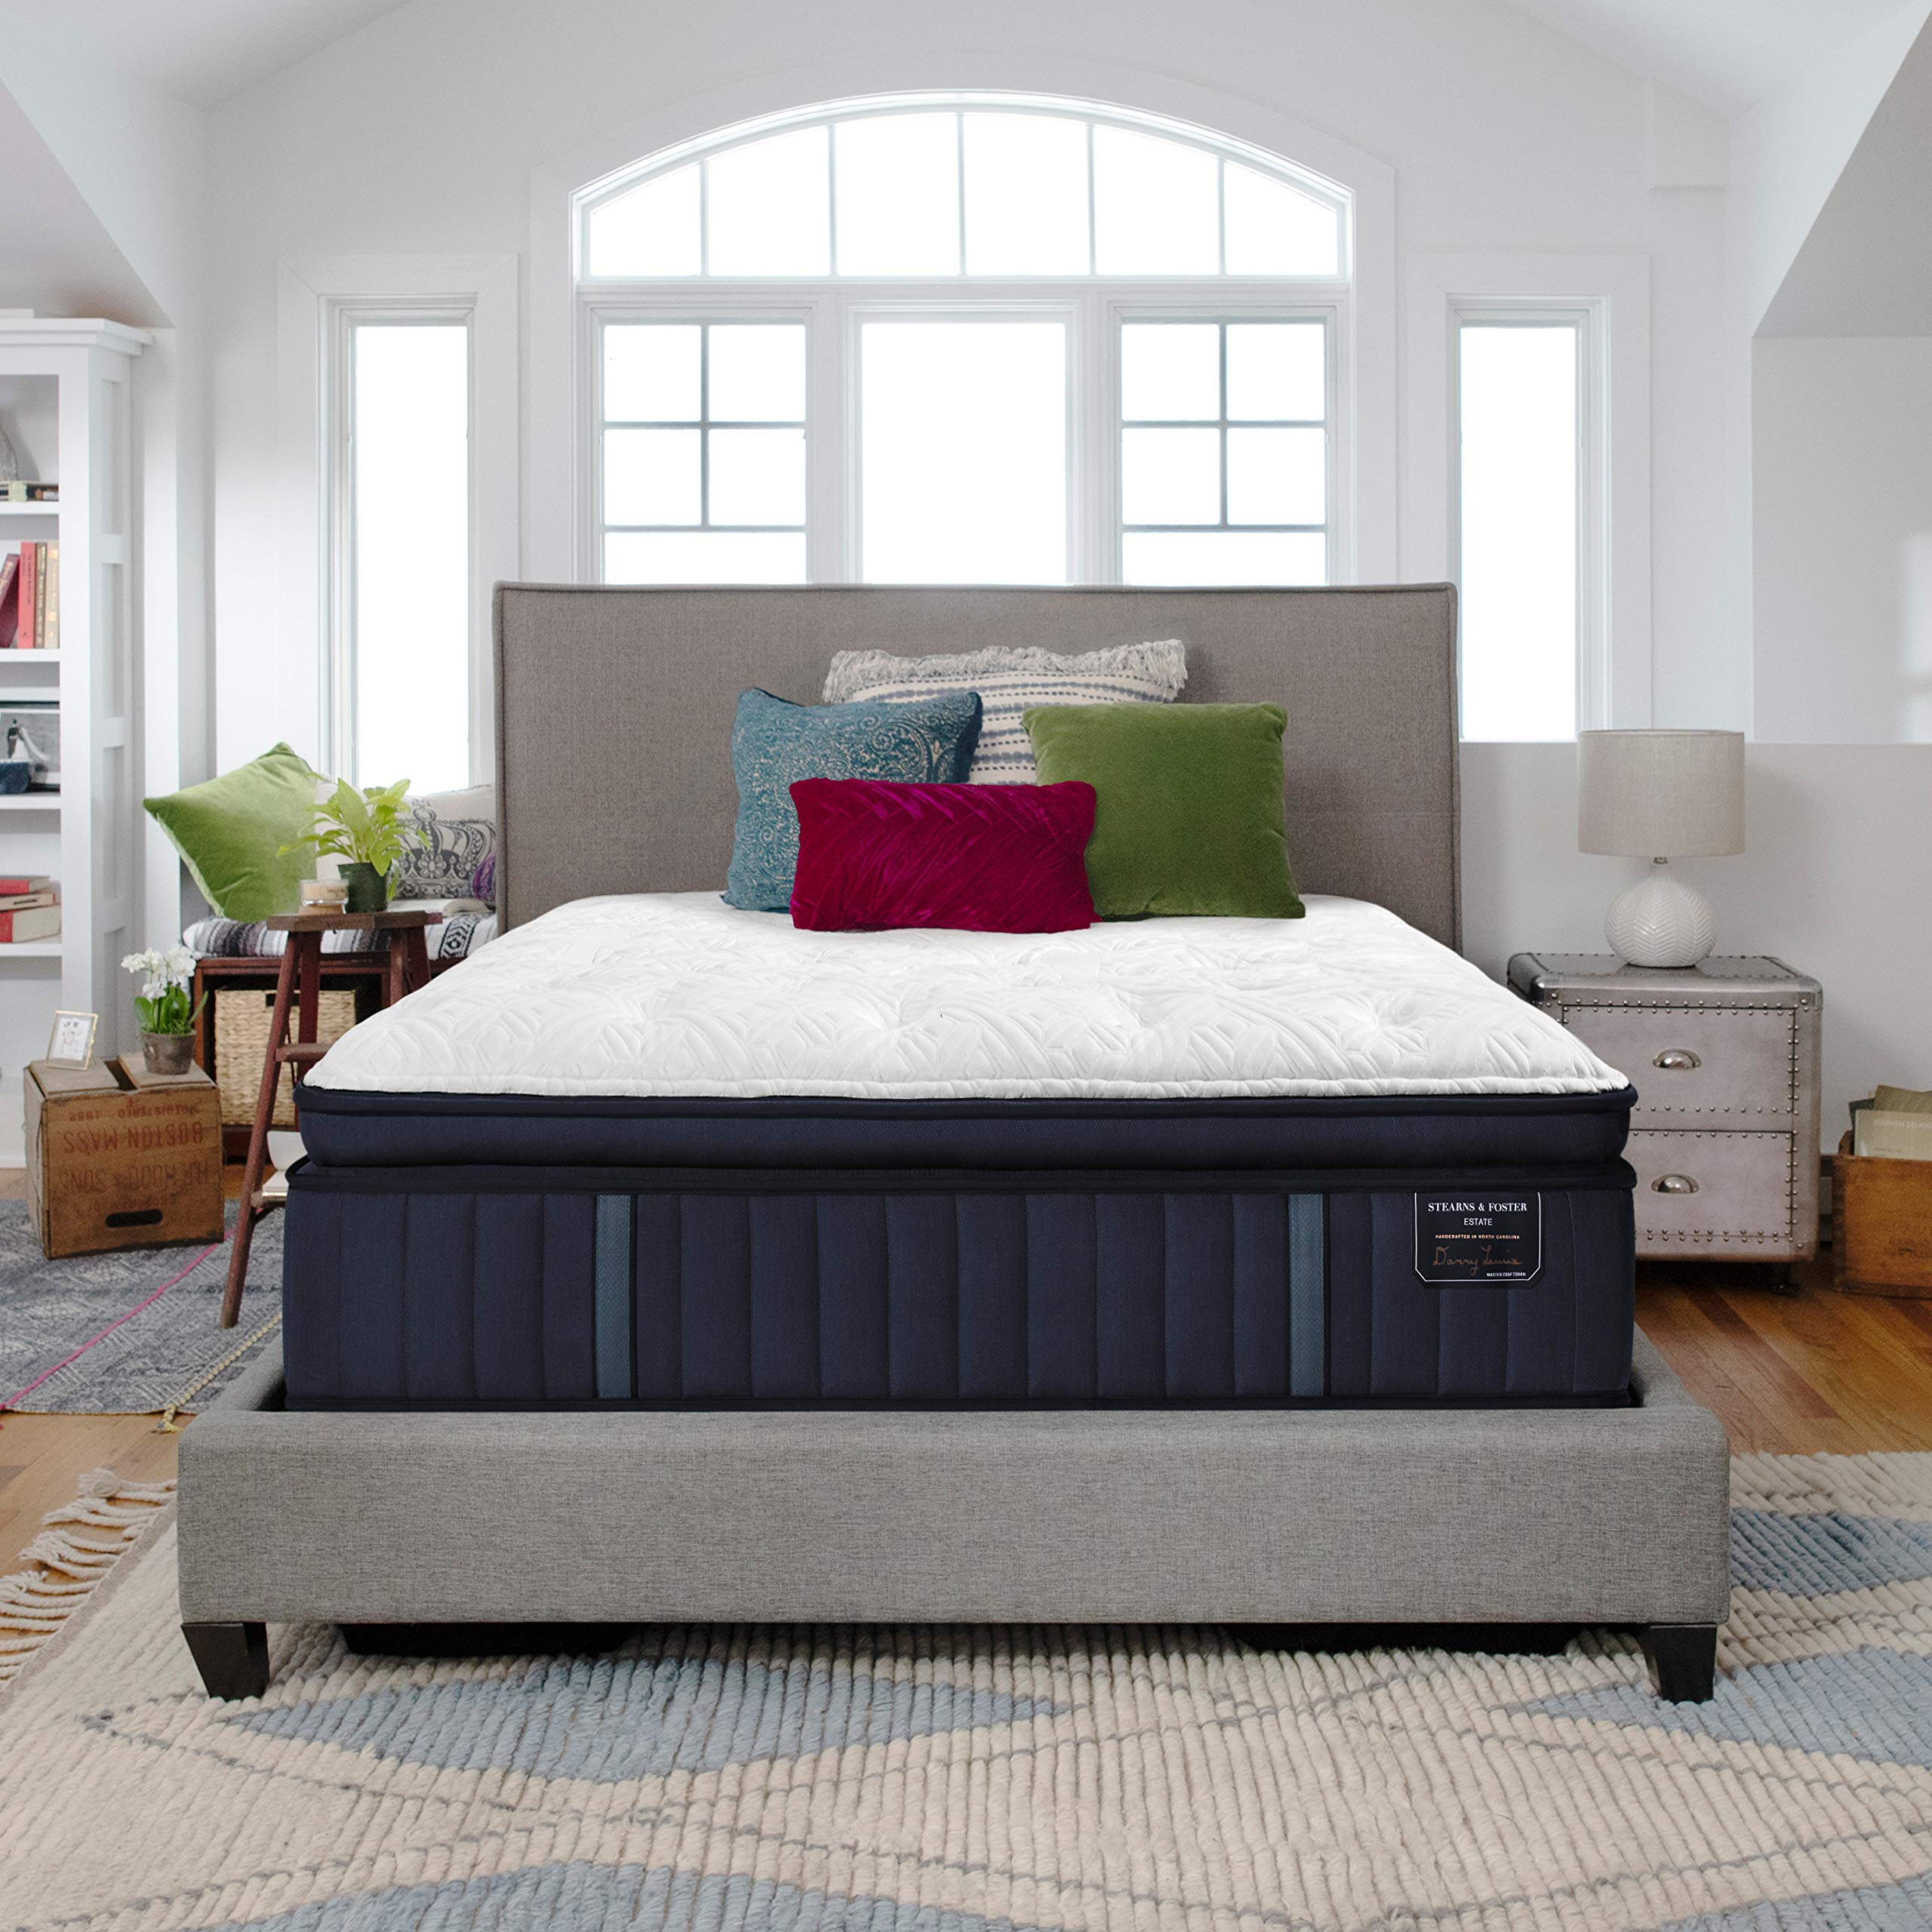 Stearns & Foster Estate, 14.5-Inch Luxury Firm Euro Pillowtop Mattress and 5-Inch Foundation, King, Hand Built in The USA, 10 Year Warranty by Sealy